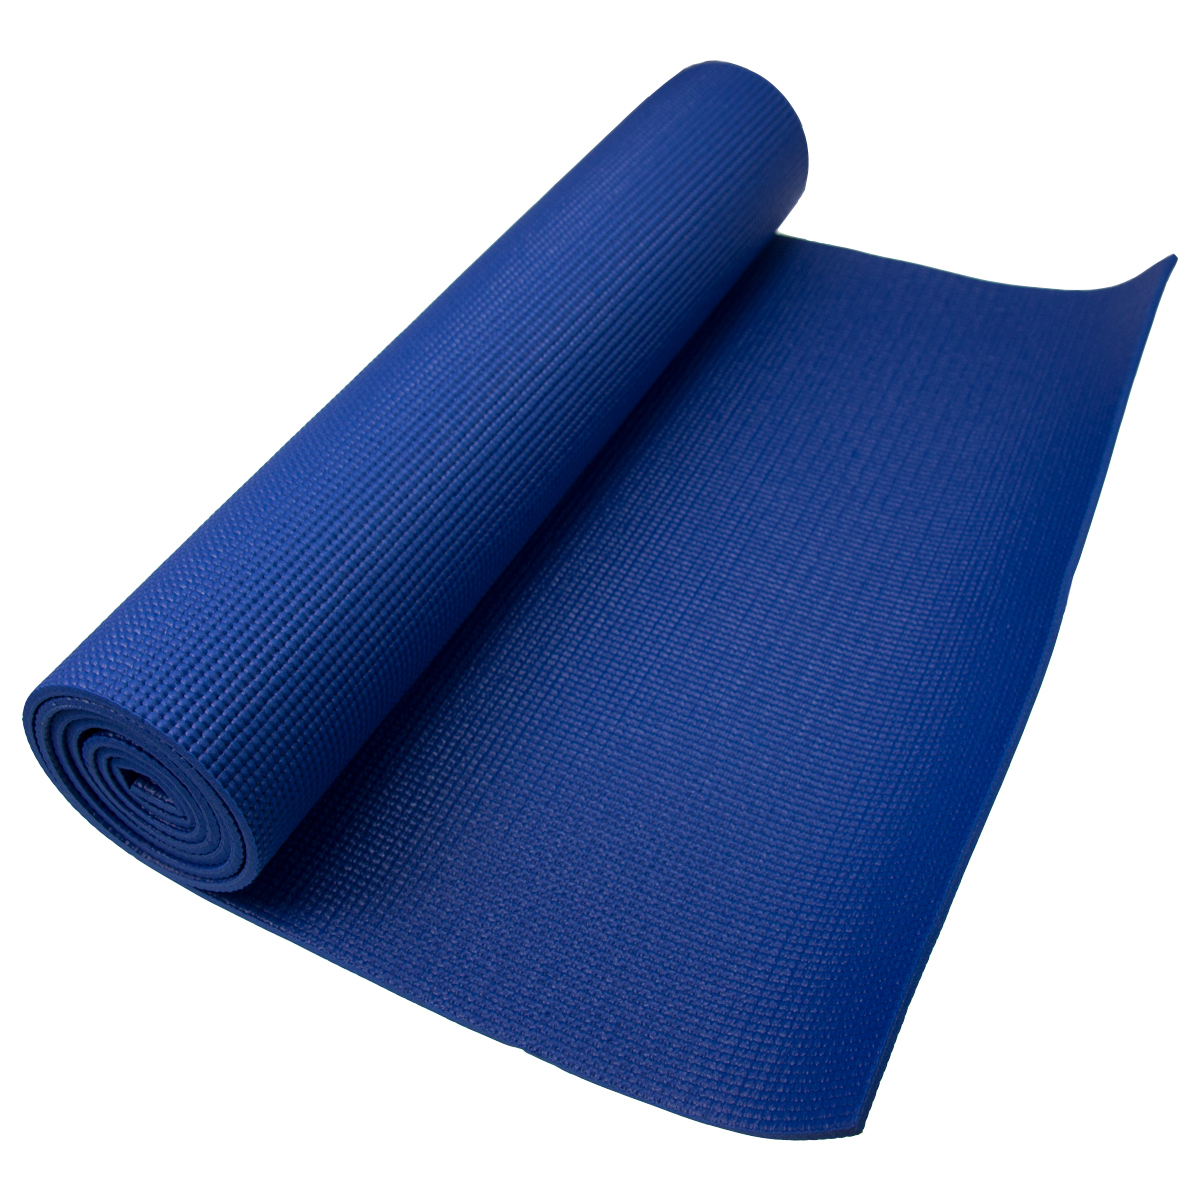 Eva Foam Yoga Mat 7mm Thick Soft Non-Slip Eco-Friendly